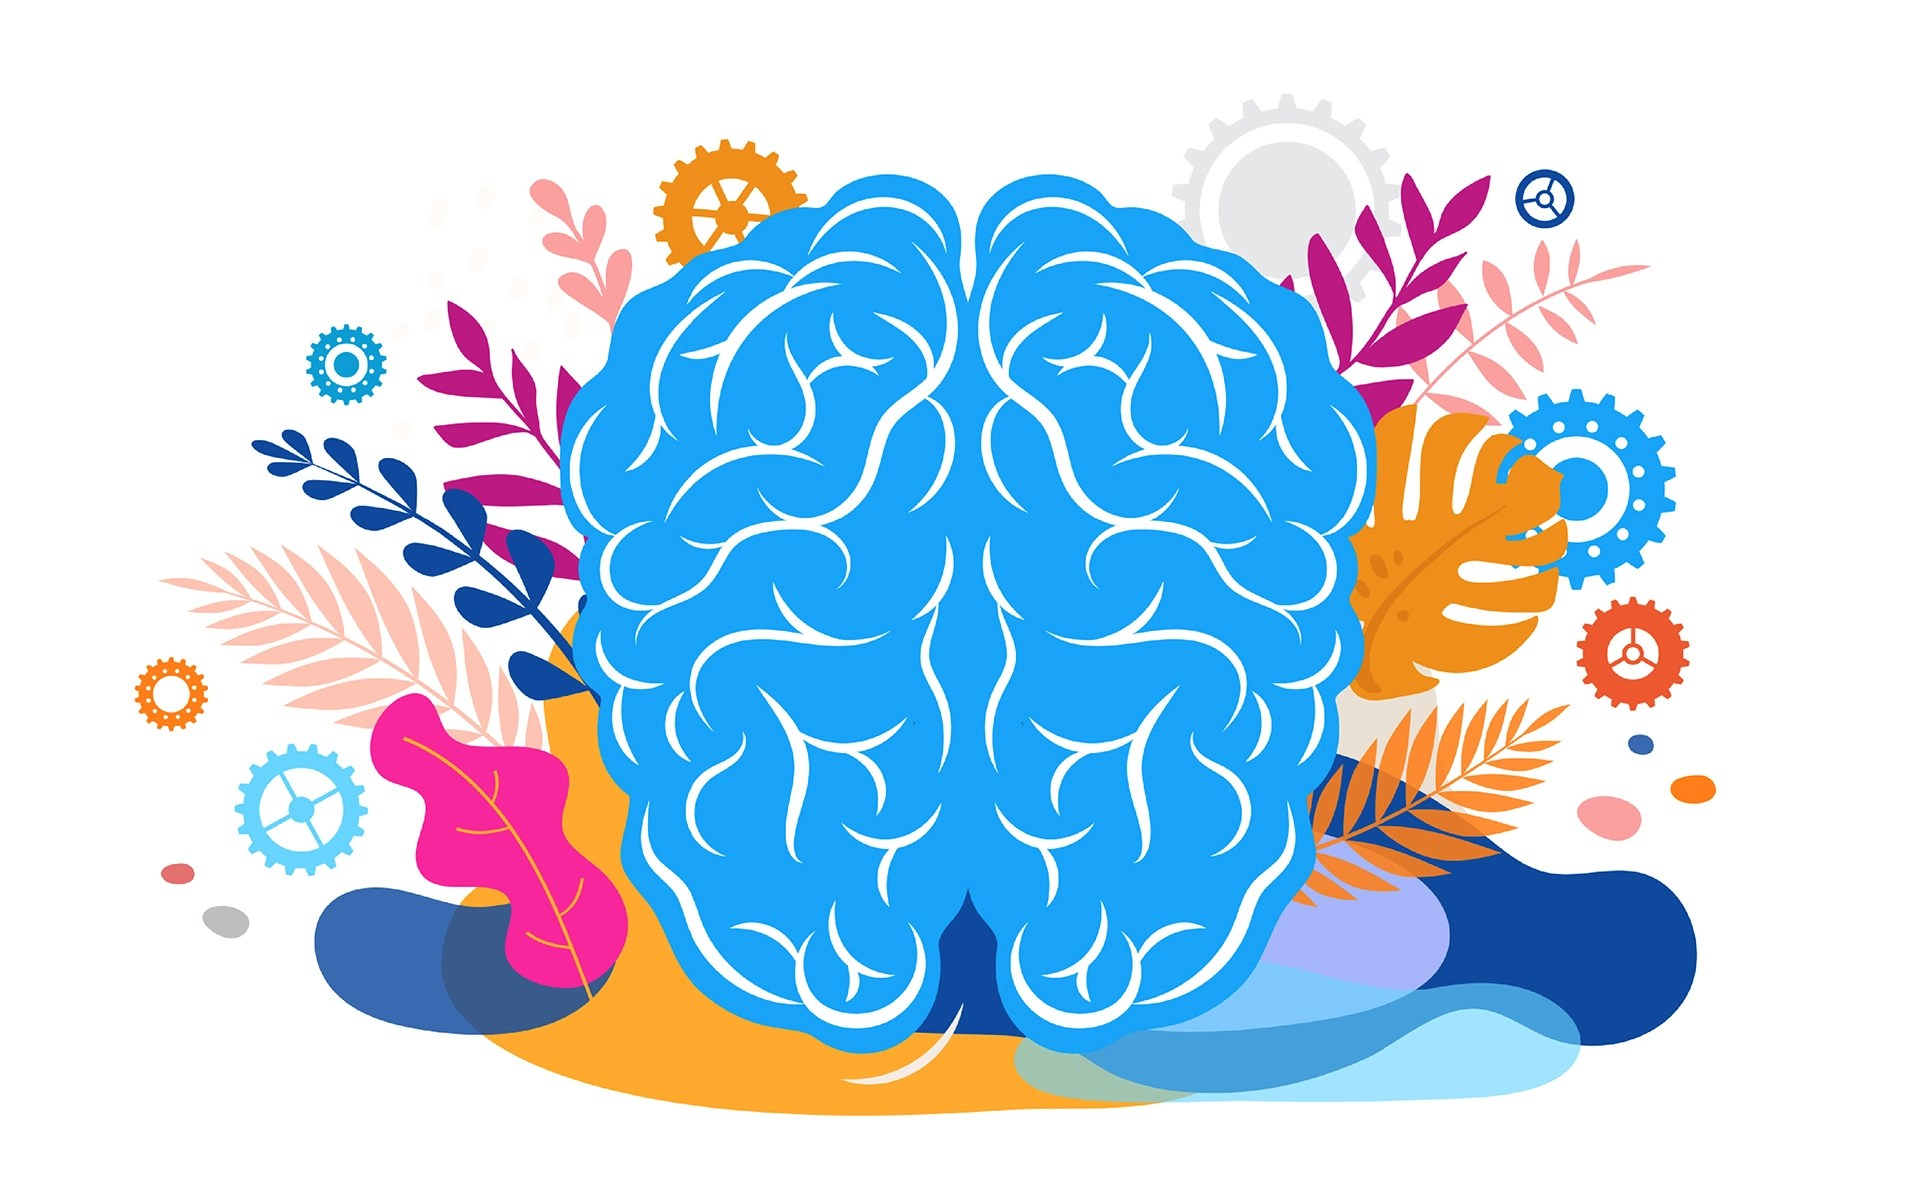 How Much Is Enough? Brain, mind and mindfulness concept illustration.